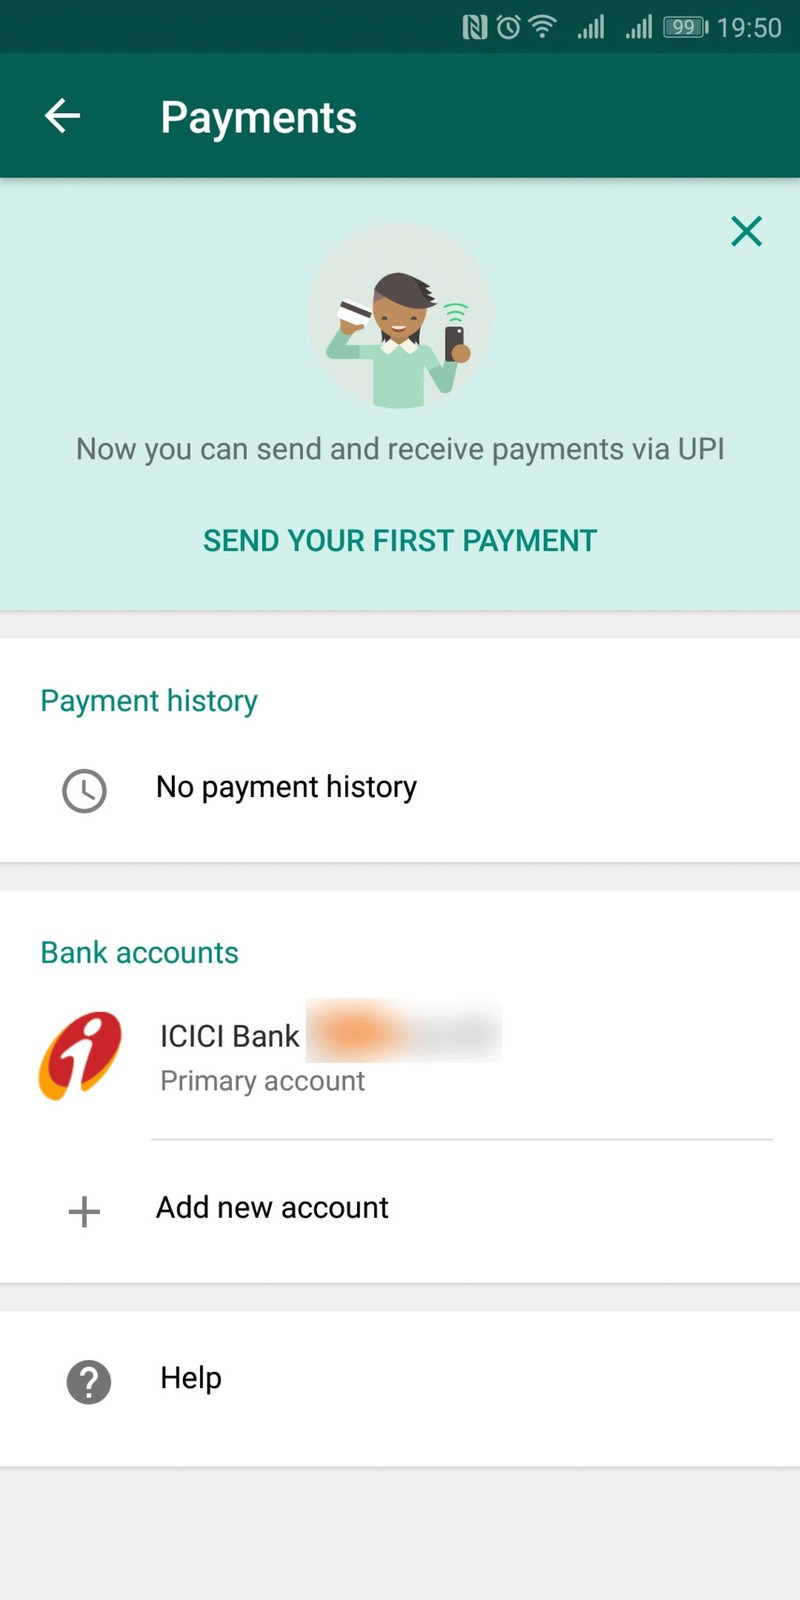 whatsapp-payments-3.jpg?itok=V7ufdAoq